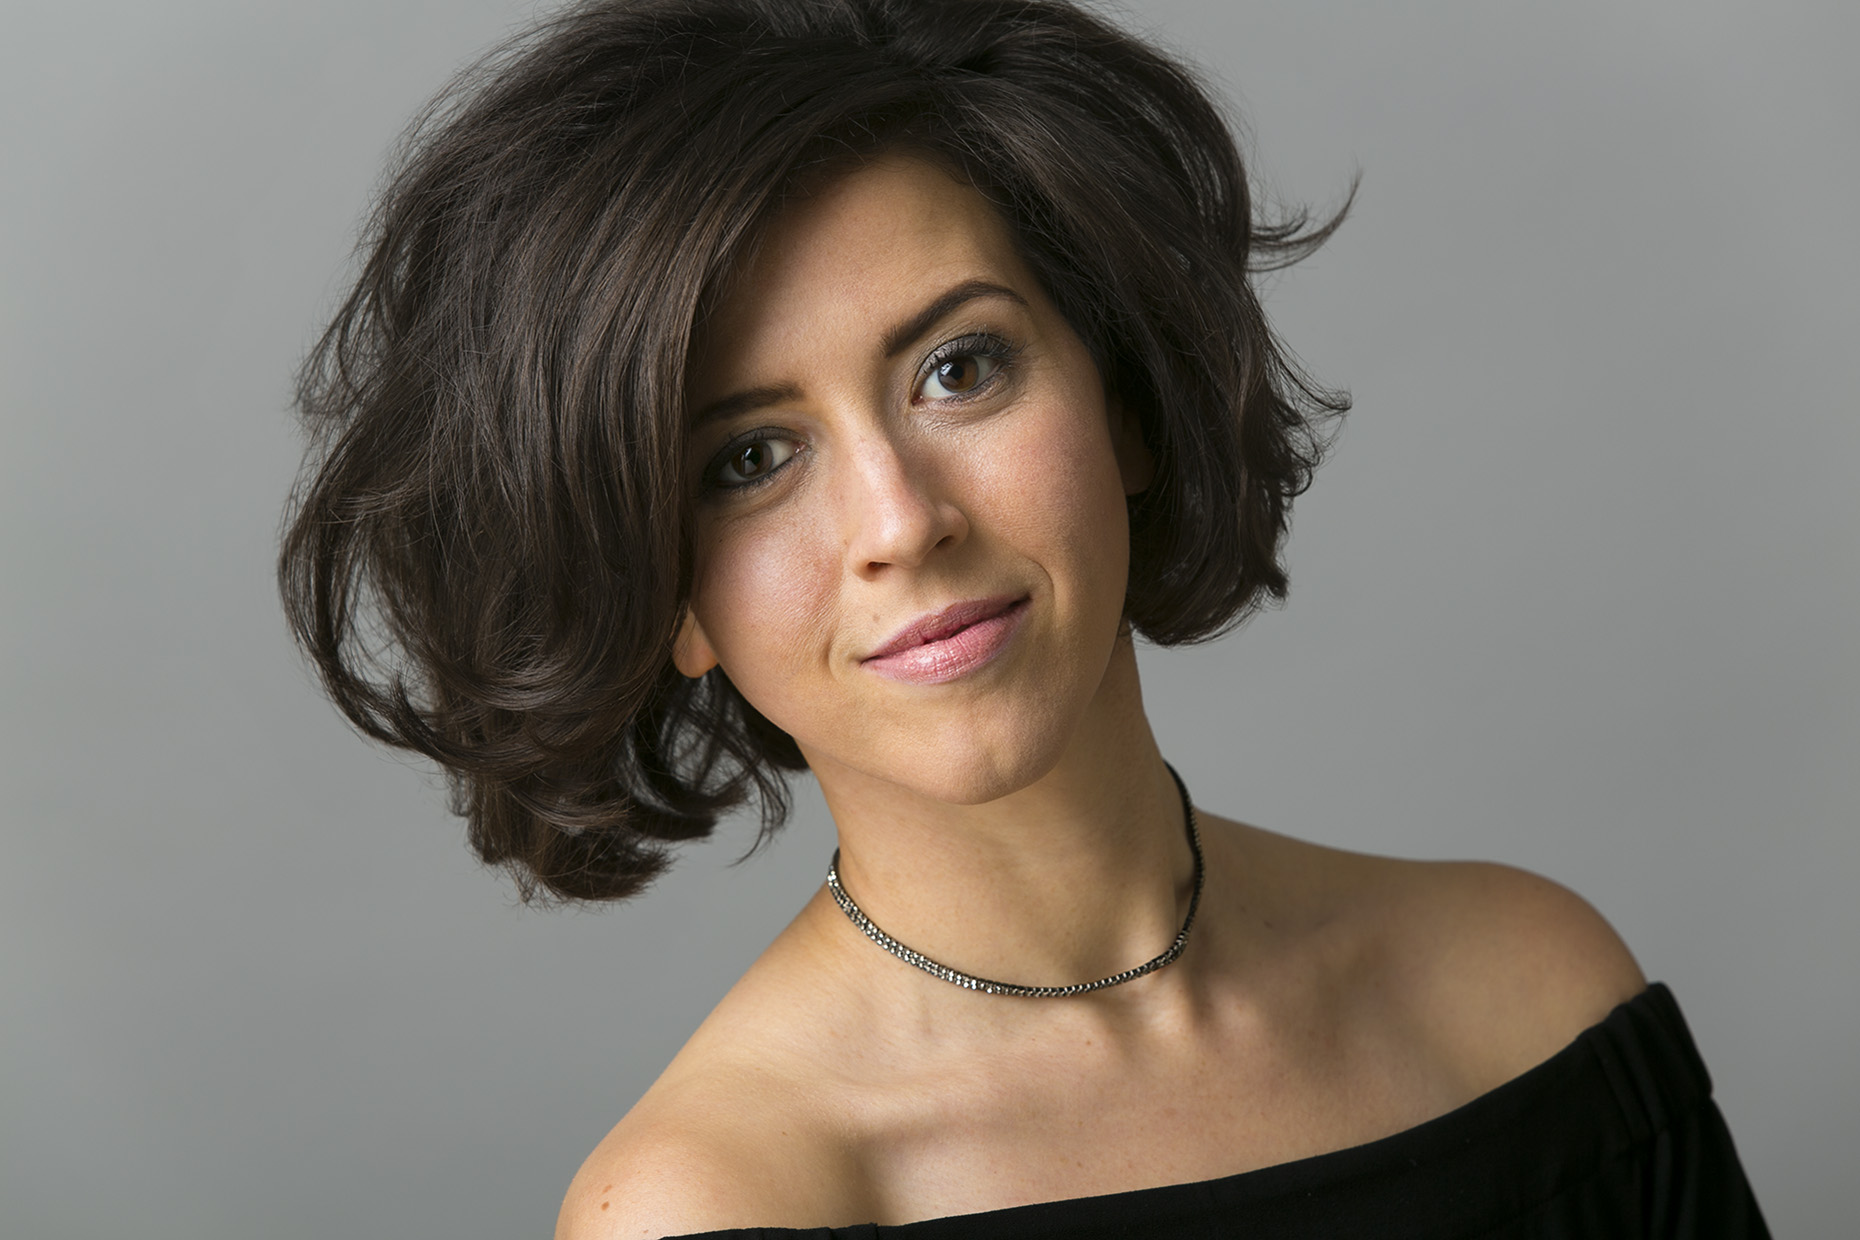 Jason Homa Headshot Photography with Lisette Oropesa